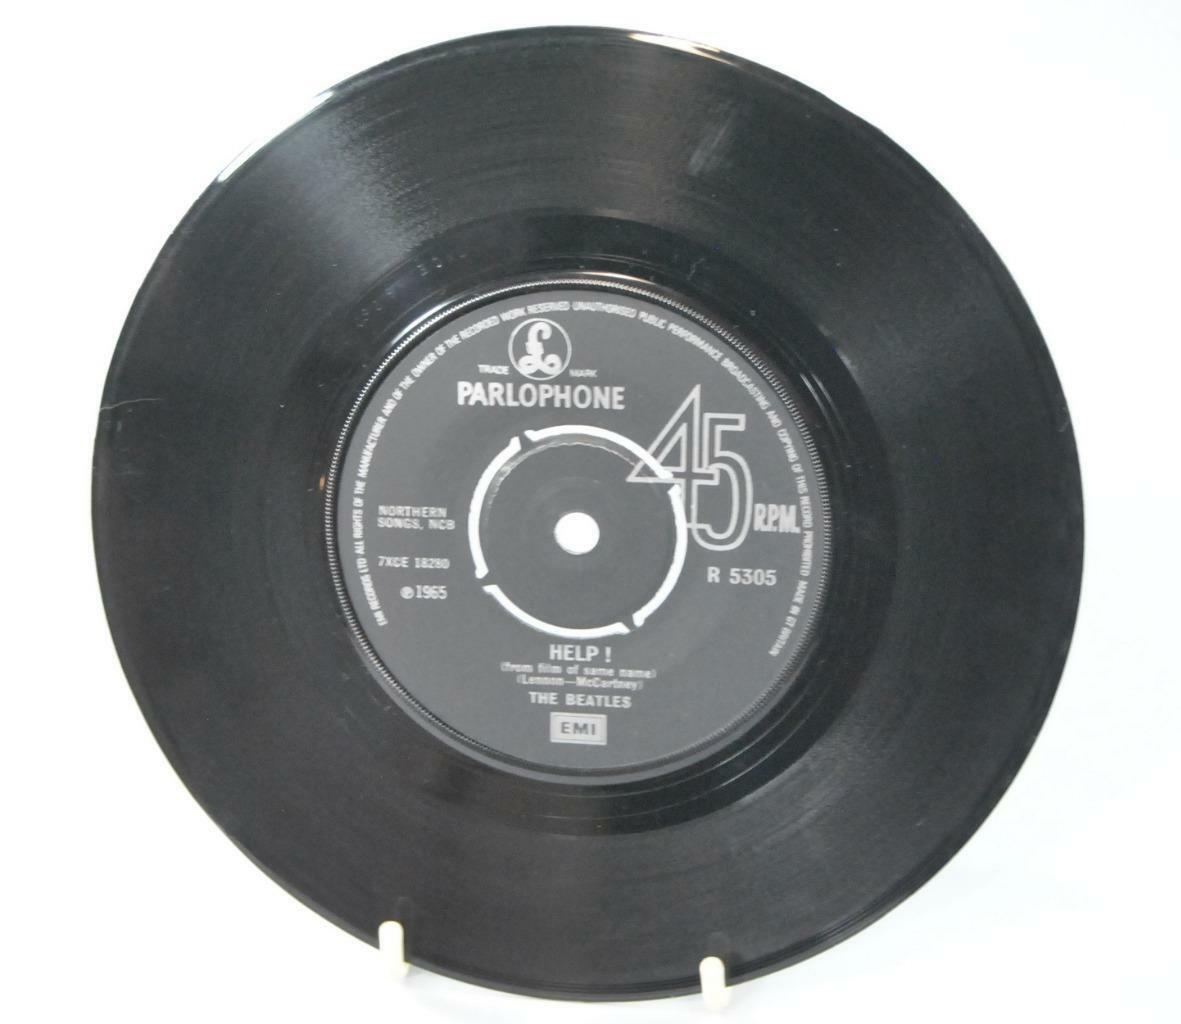 Emi Records 45 Rpm Record The Beatles Help I M Down